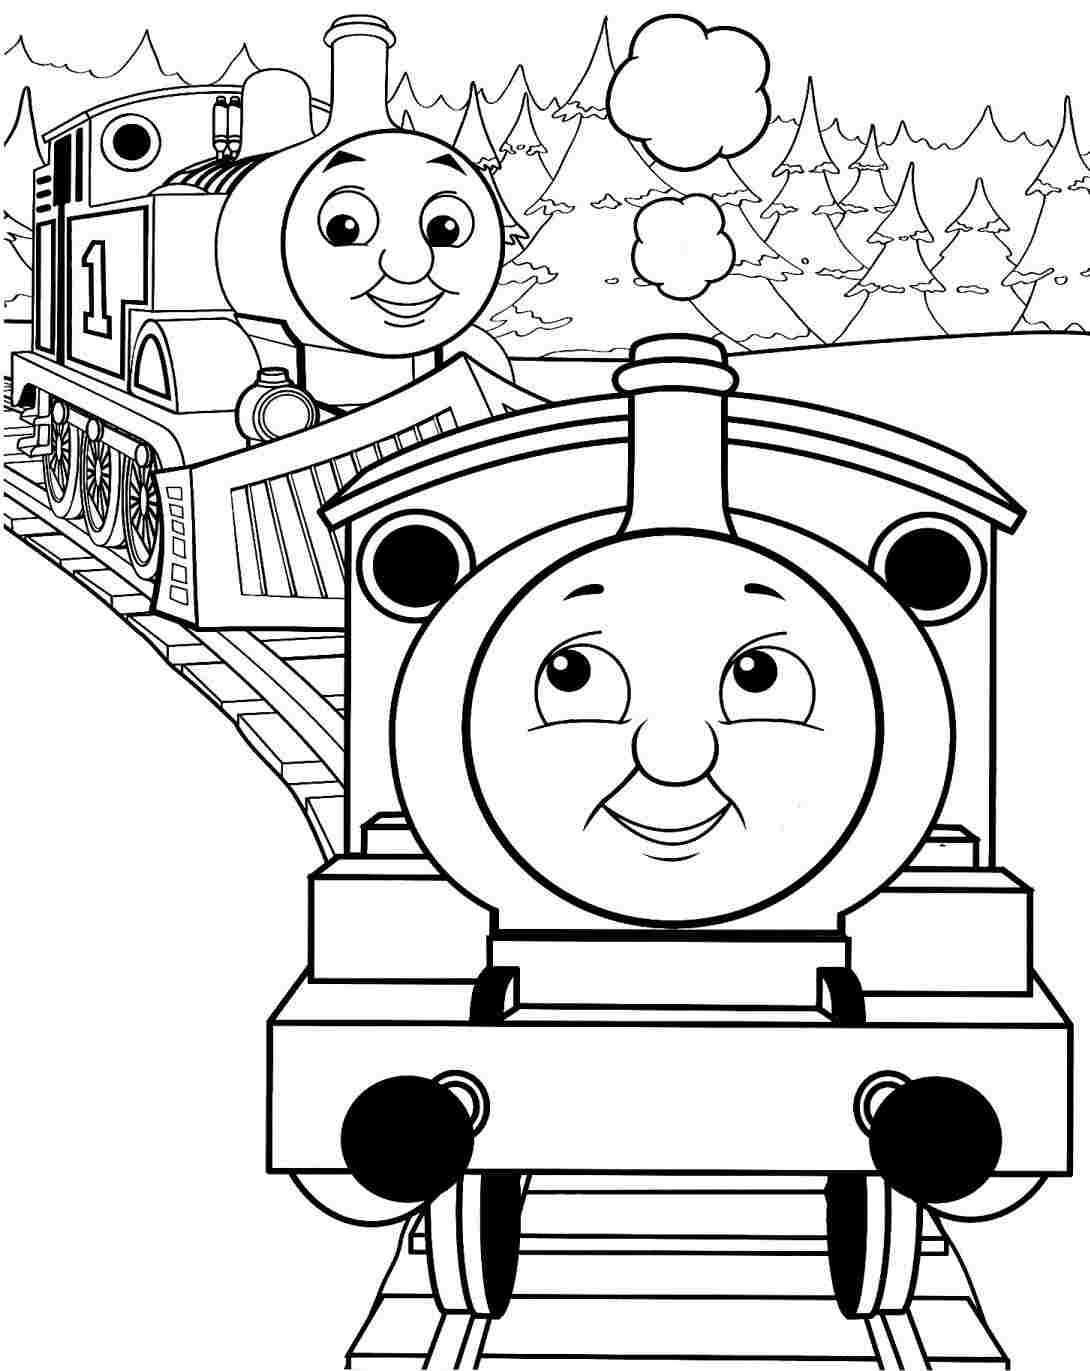 thomas and friends coloring sheets coloring book il trenino thomas and coloring friends sheets thomas